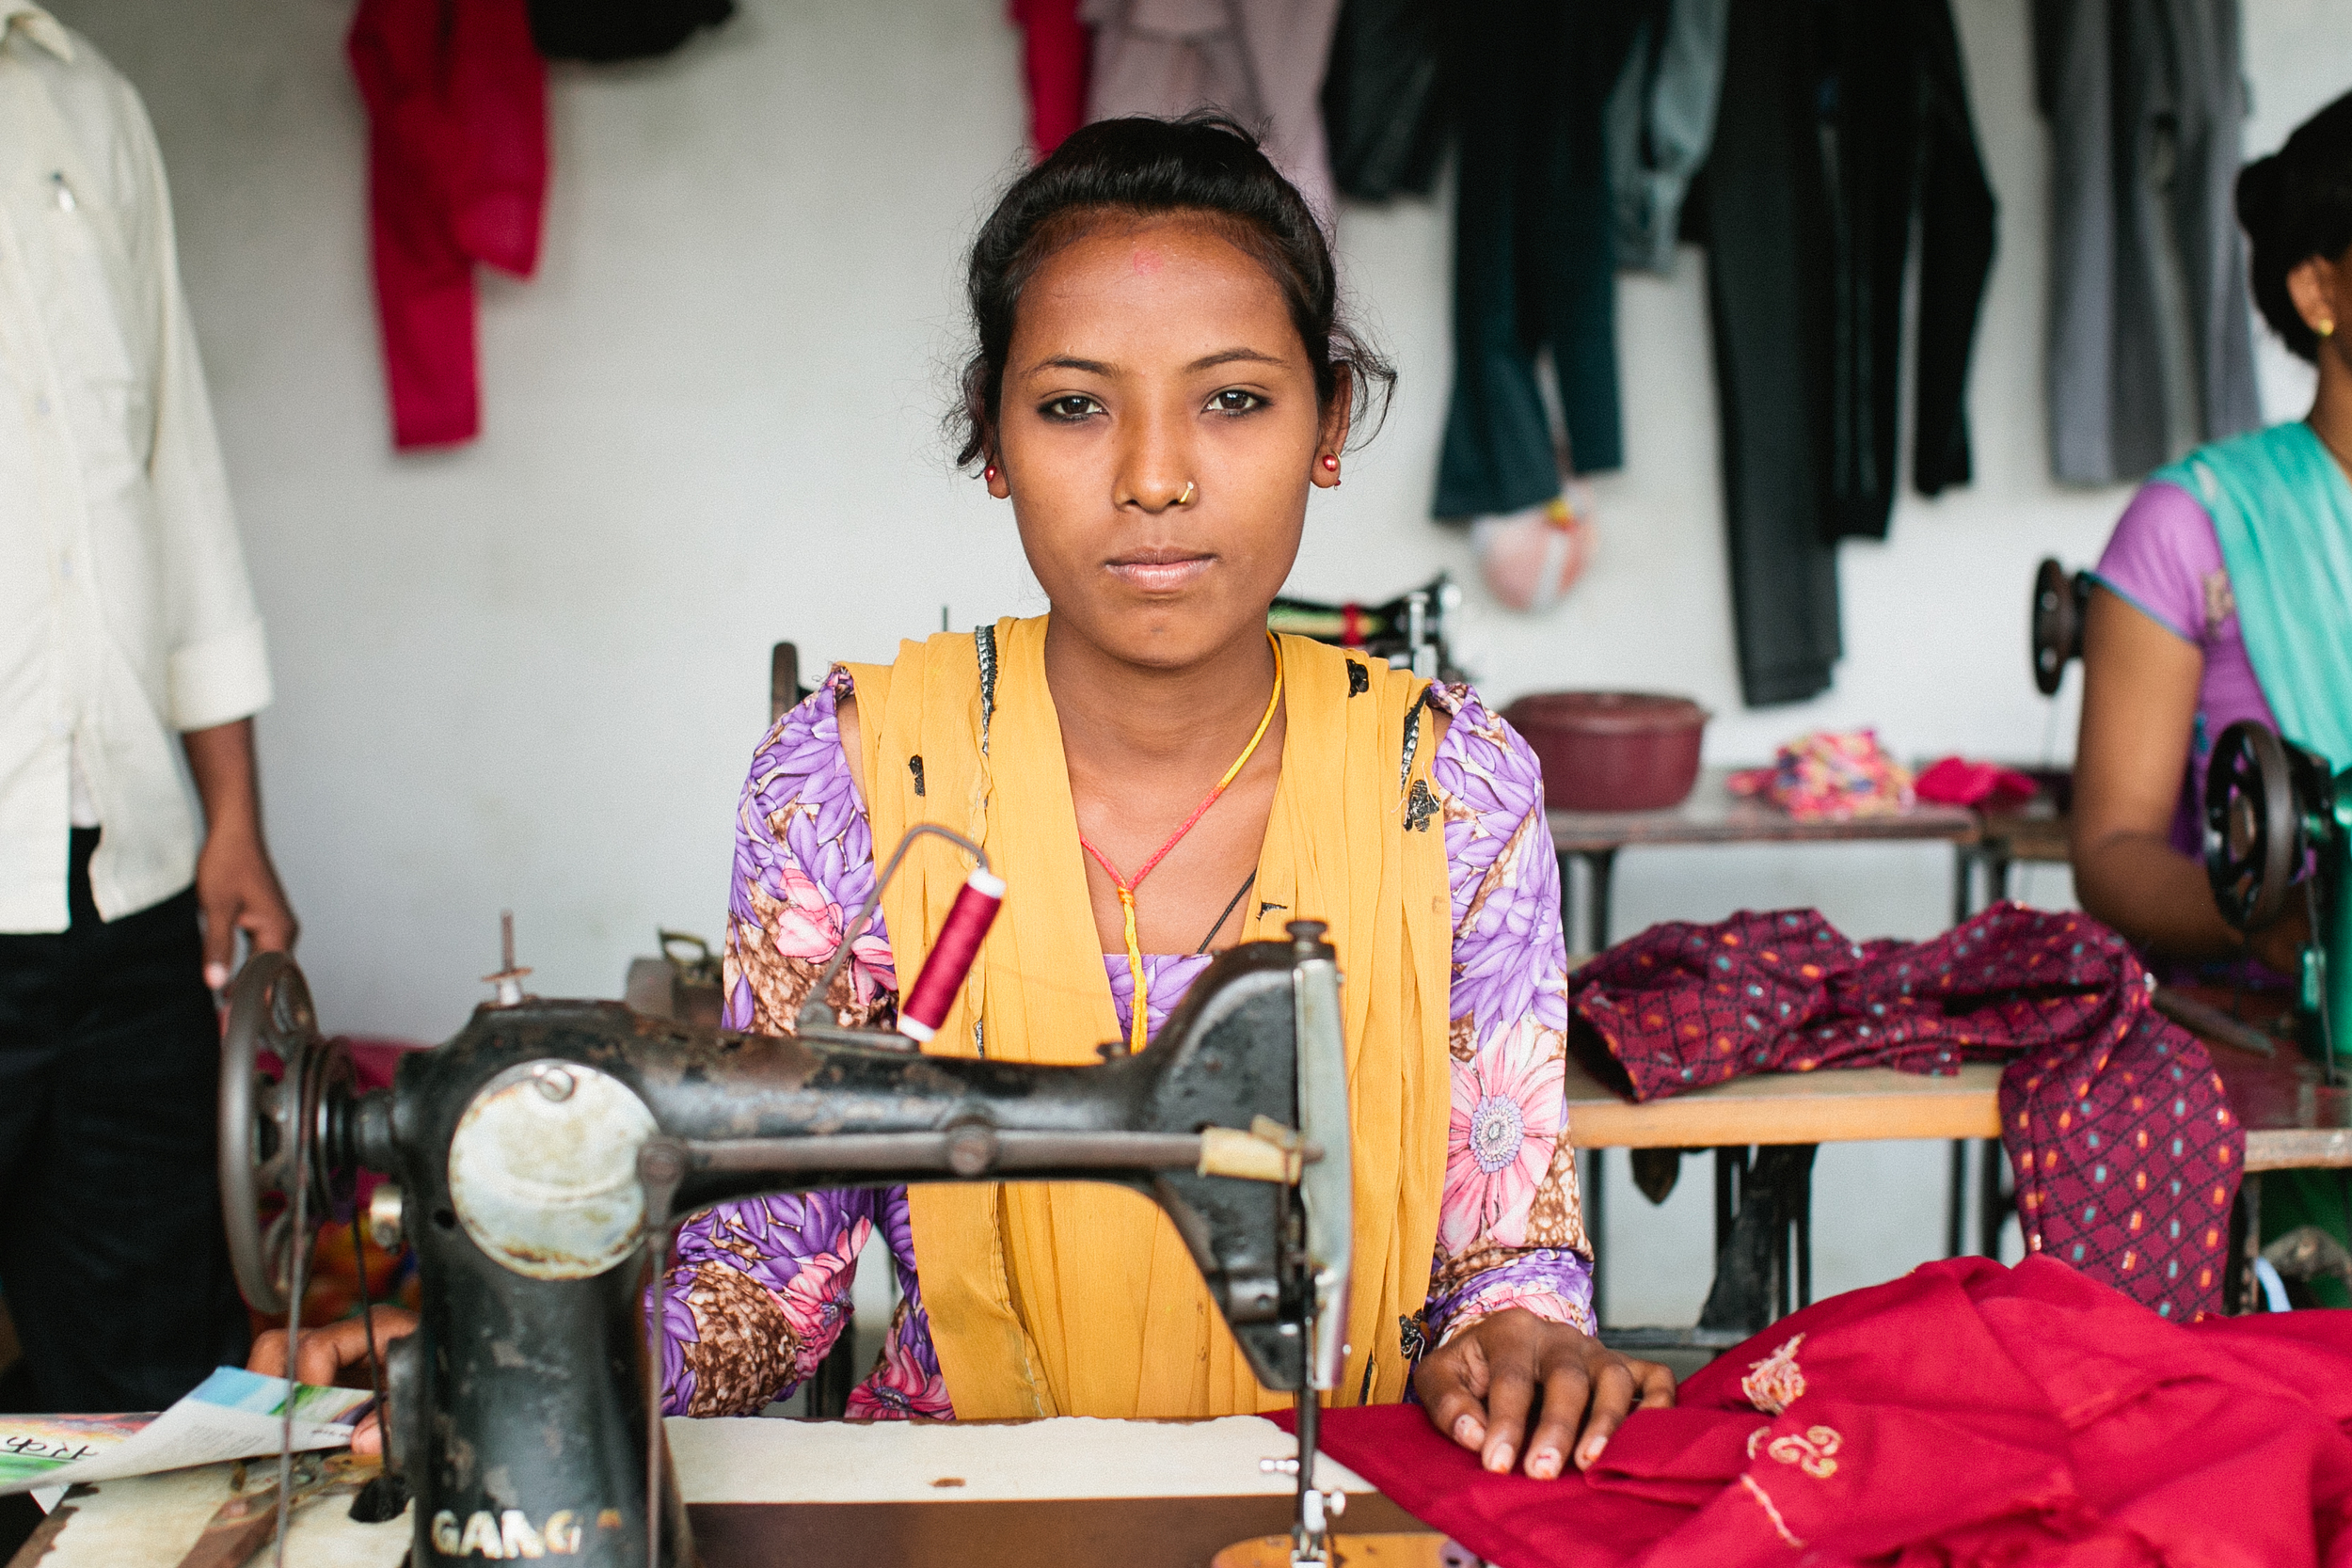 A village woman is able to use a sewing machine to make and sell items to help support her family.